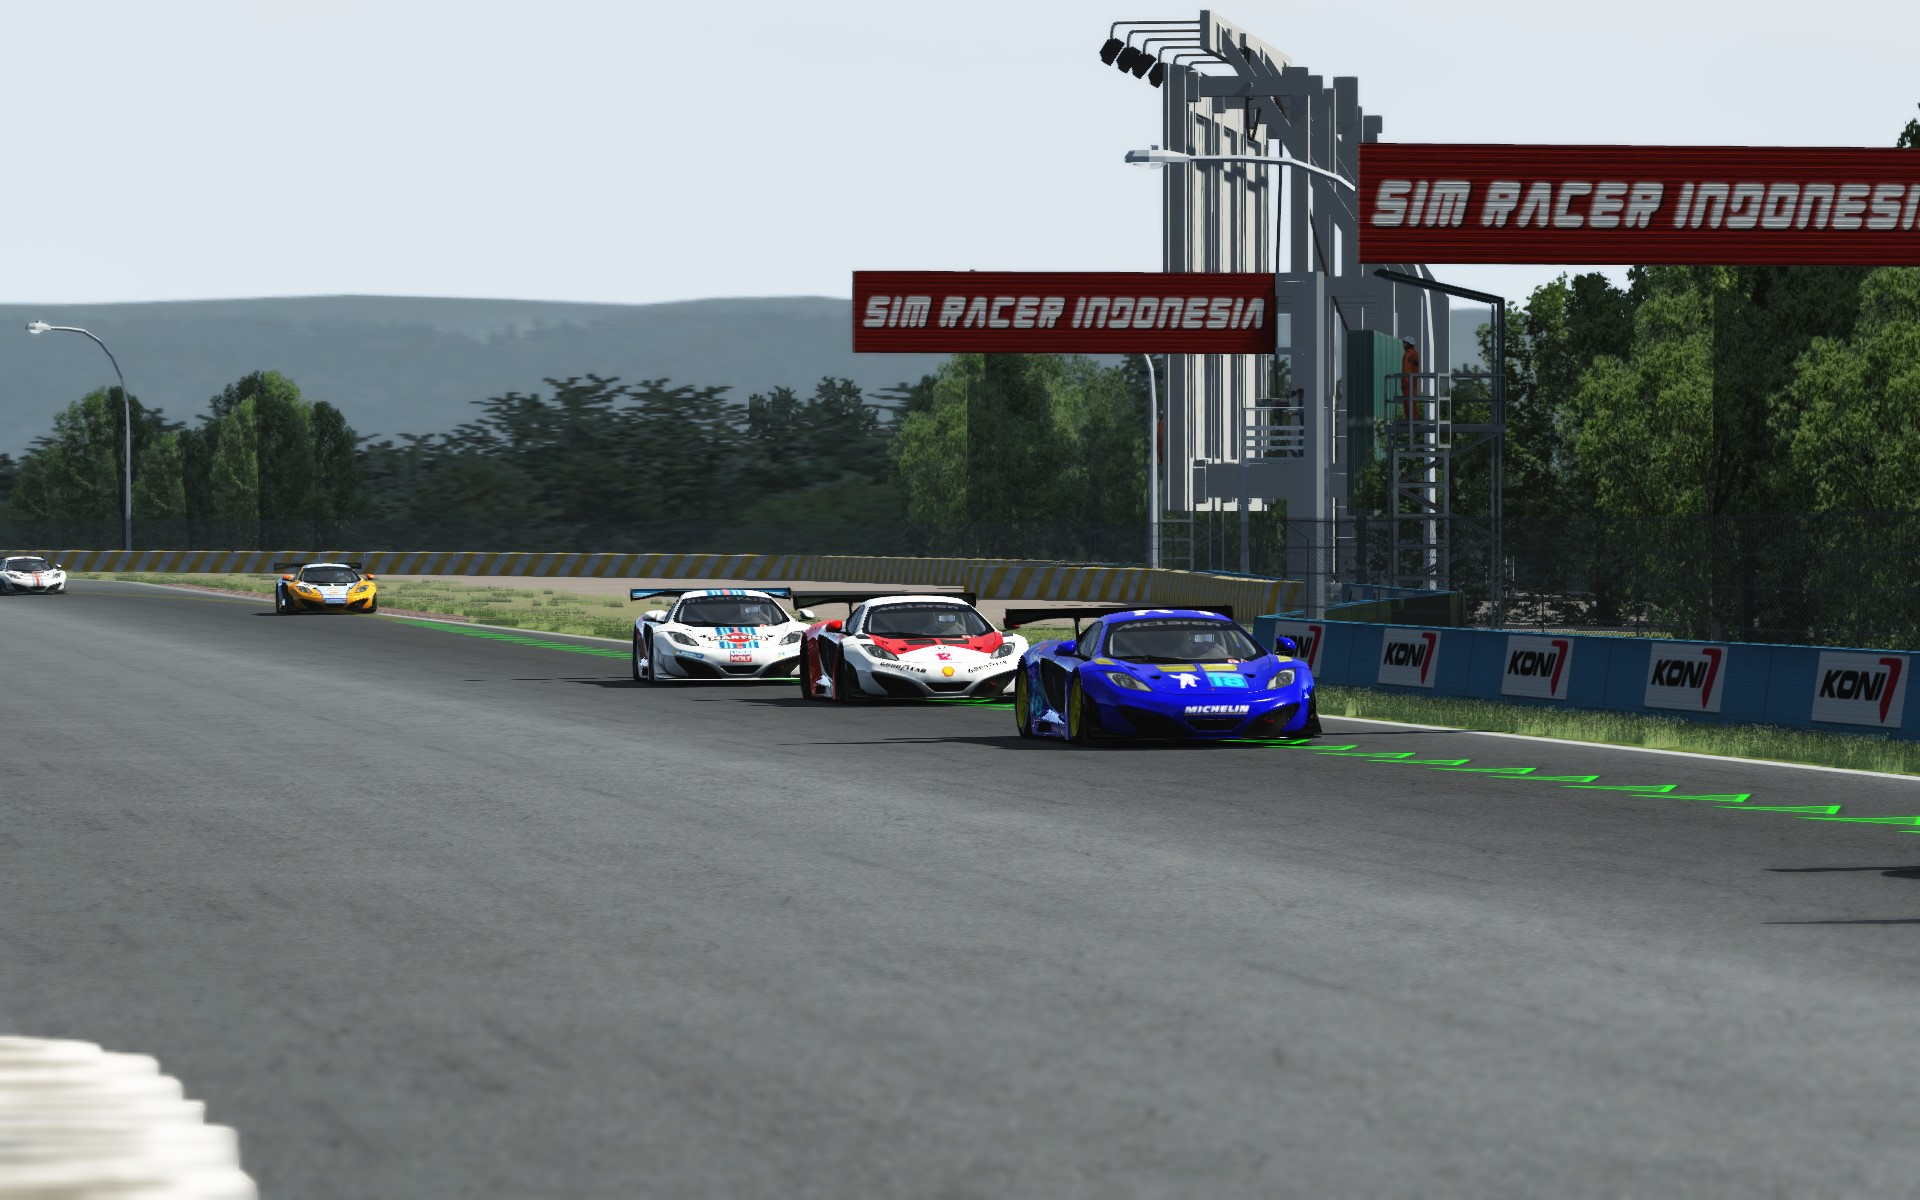 Screenshot_mclaren_mp412c_gt3_sentul_circuit_30-7-115-12-49-27.jpg